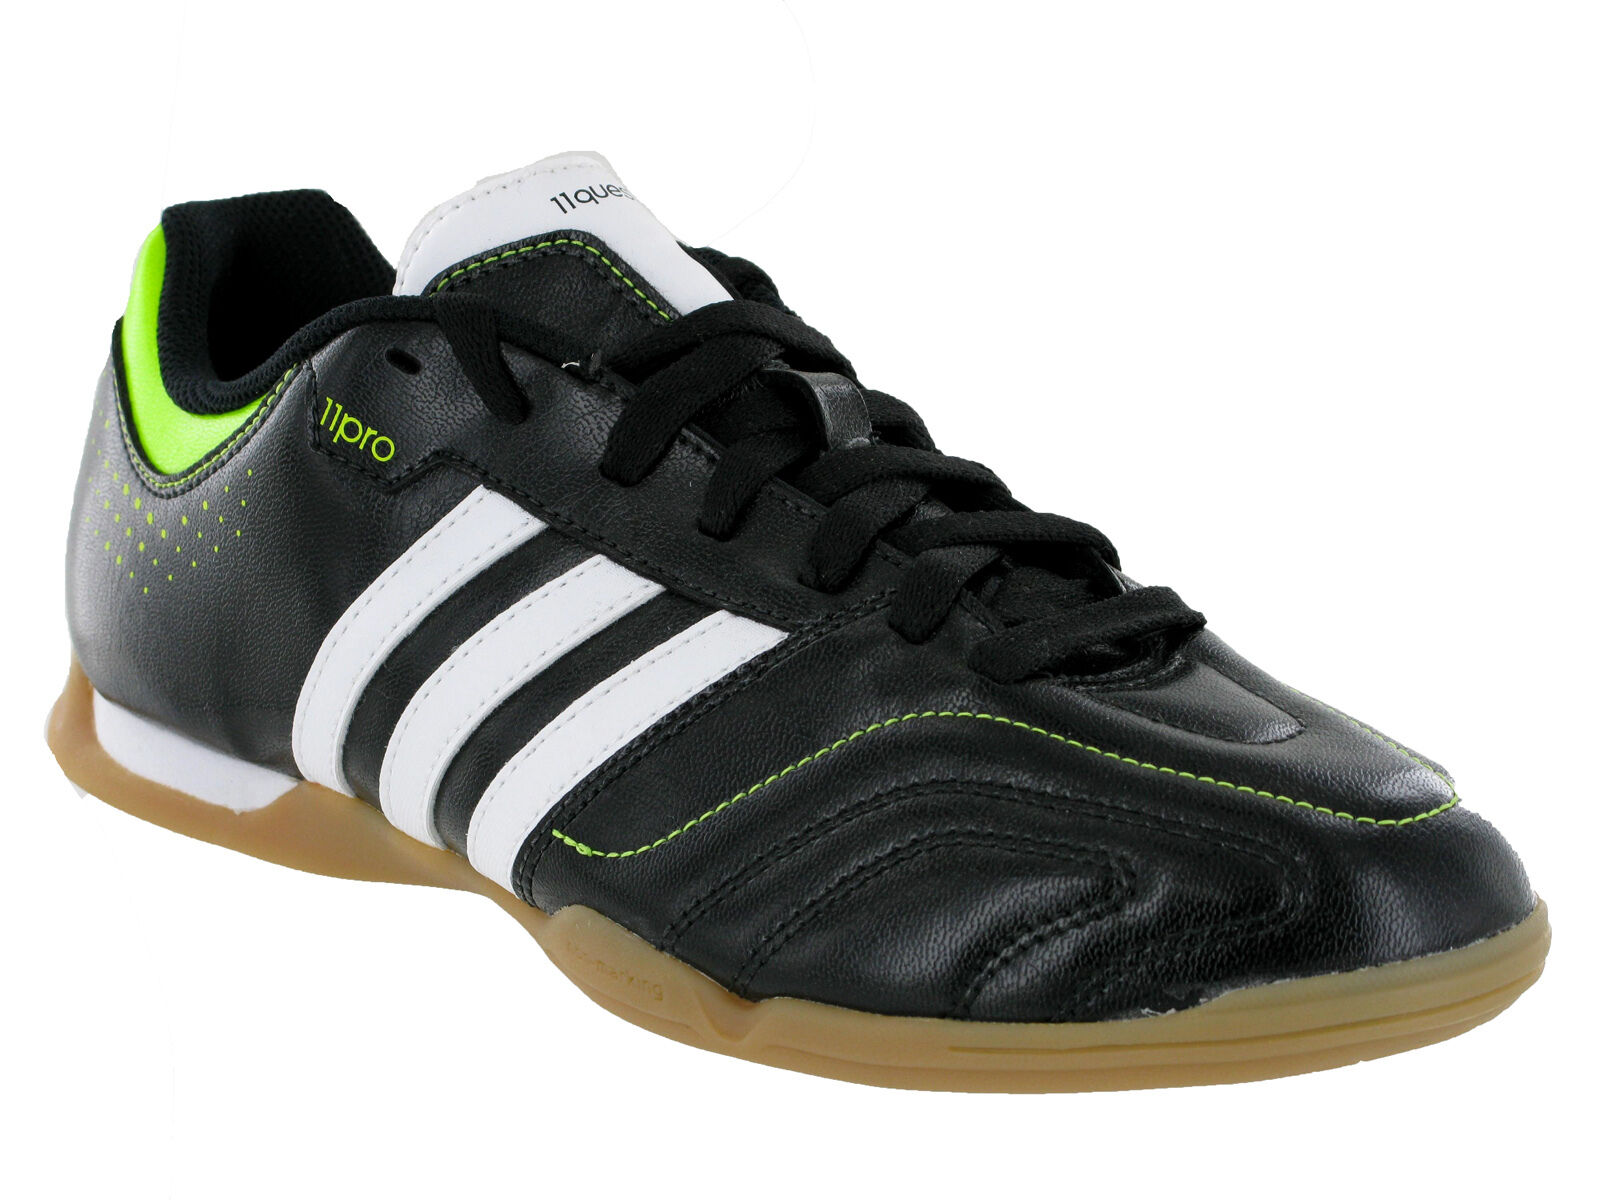 Adidas 11Questra IN Casual Black Fashion Sports Mens Trainers UK6-11 Comfortable and good-looking